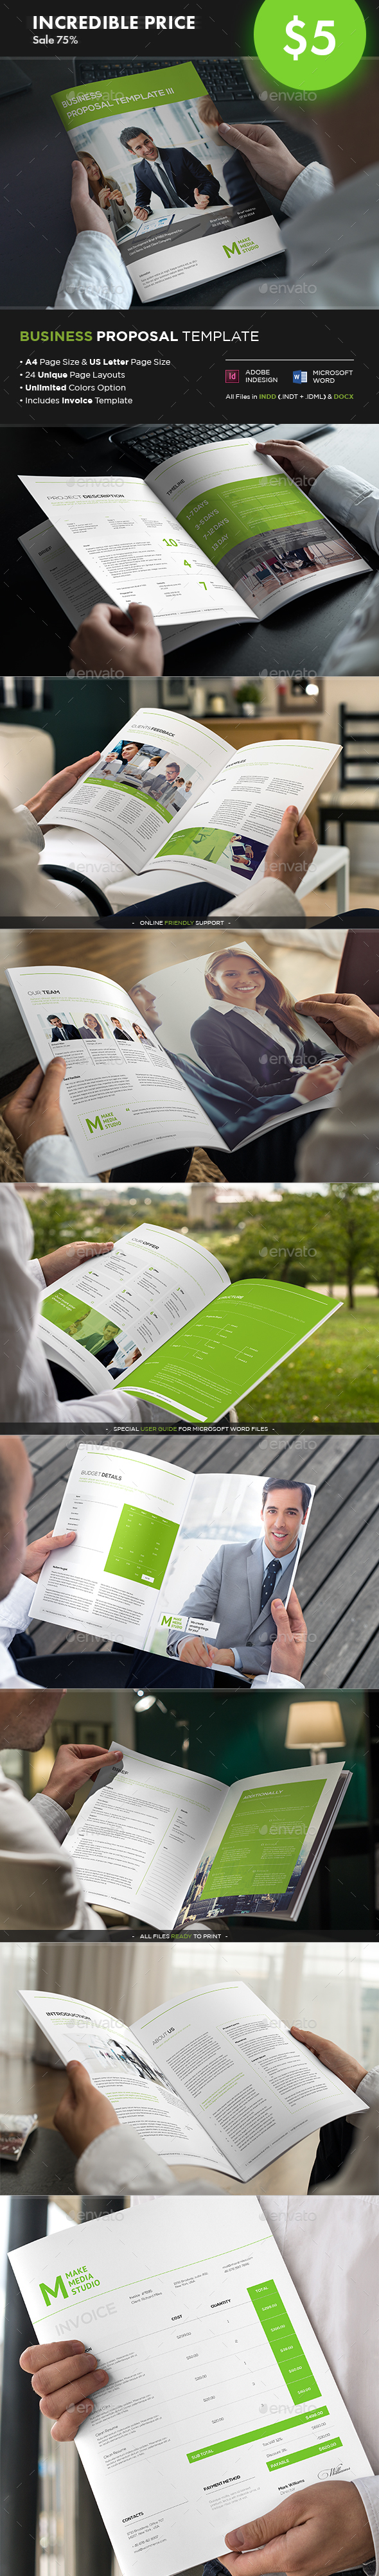 Business Proposal Template III - Proposals & Invoices Stationery